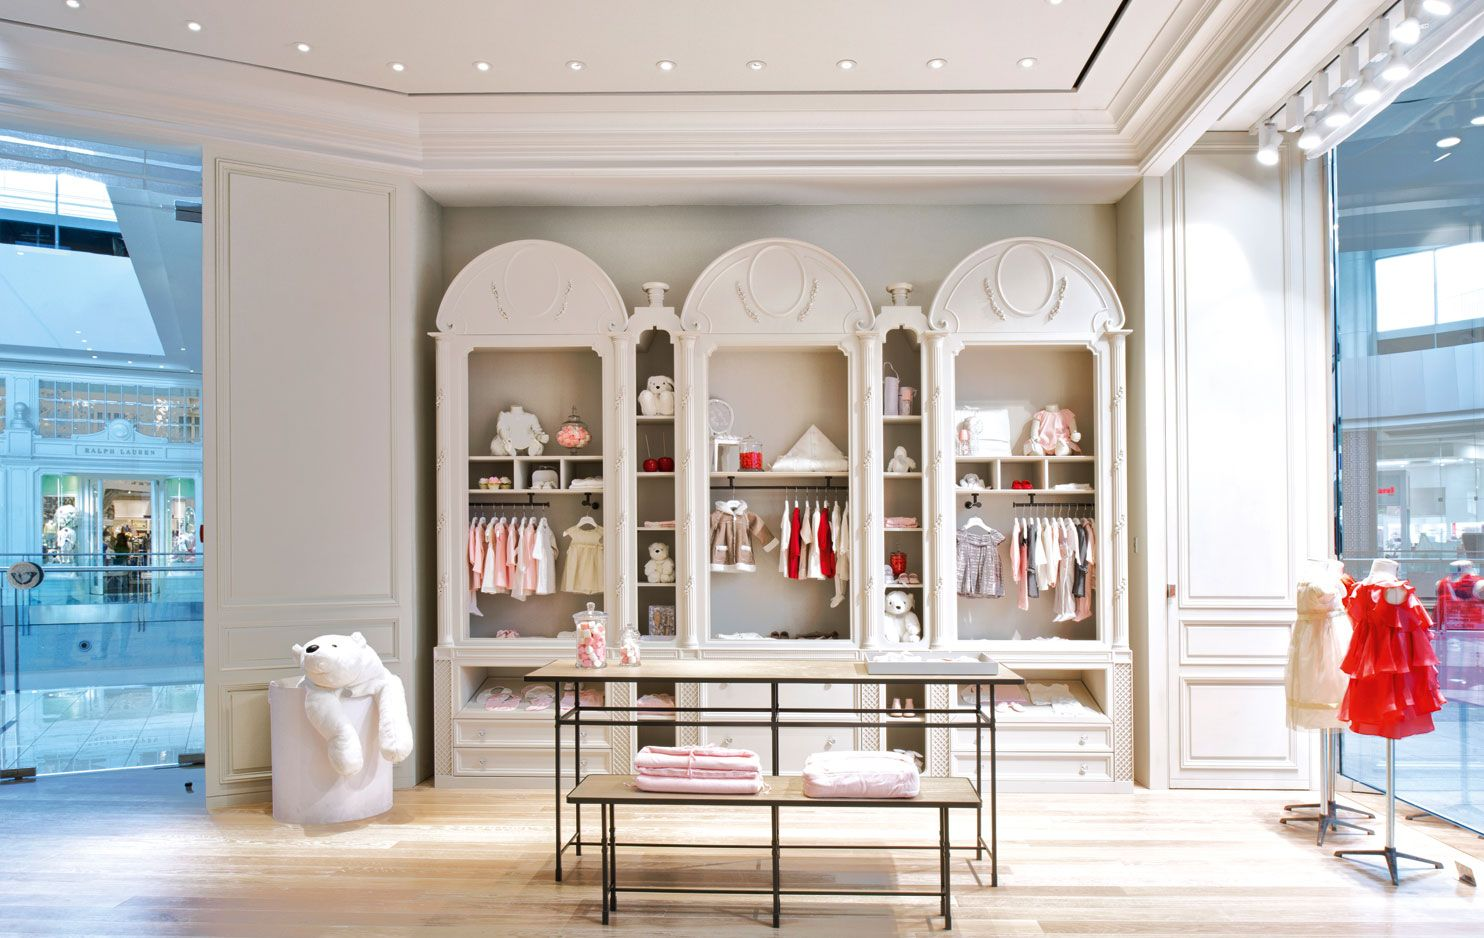 Discover the new baby dior and dior kids boutique in paris baby dior desig - Paris shopping boutiques ...